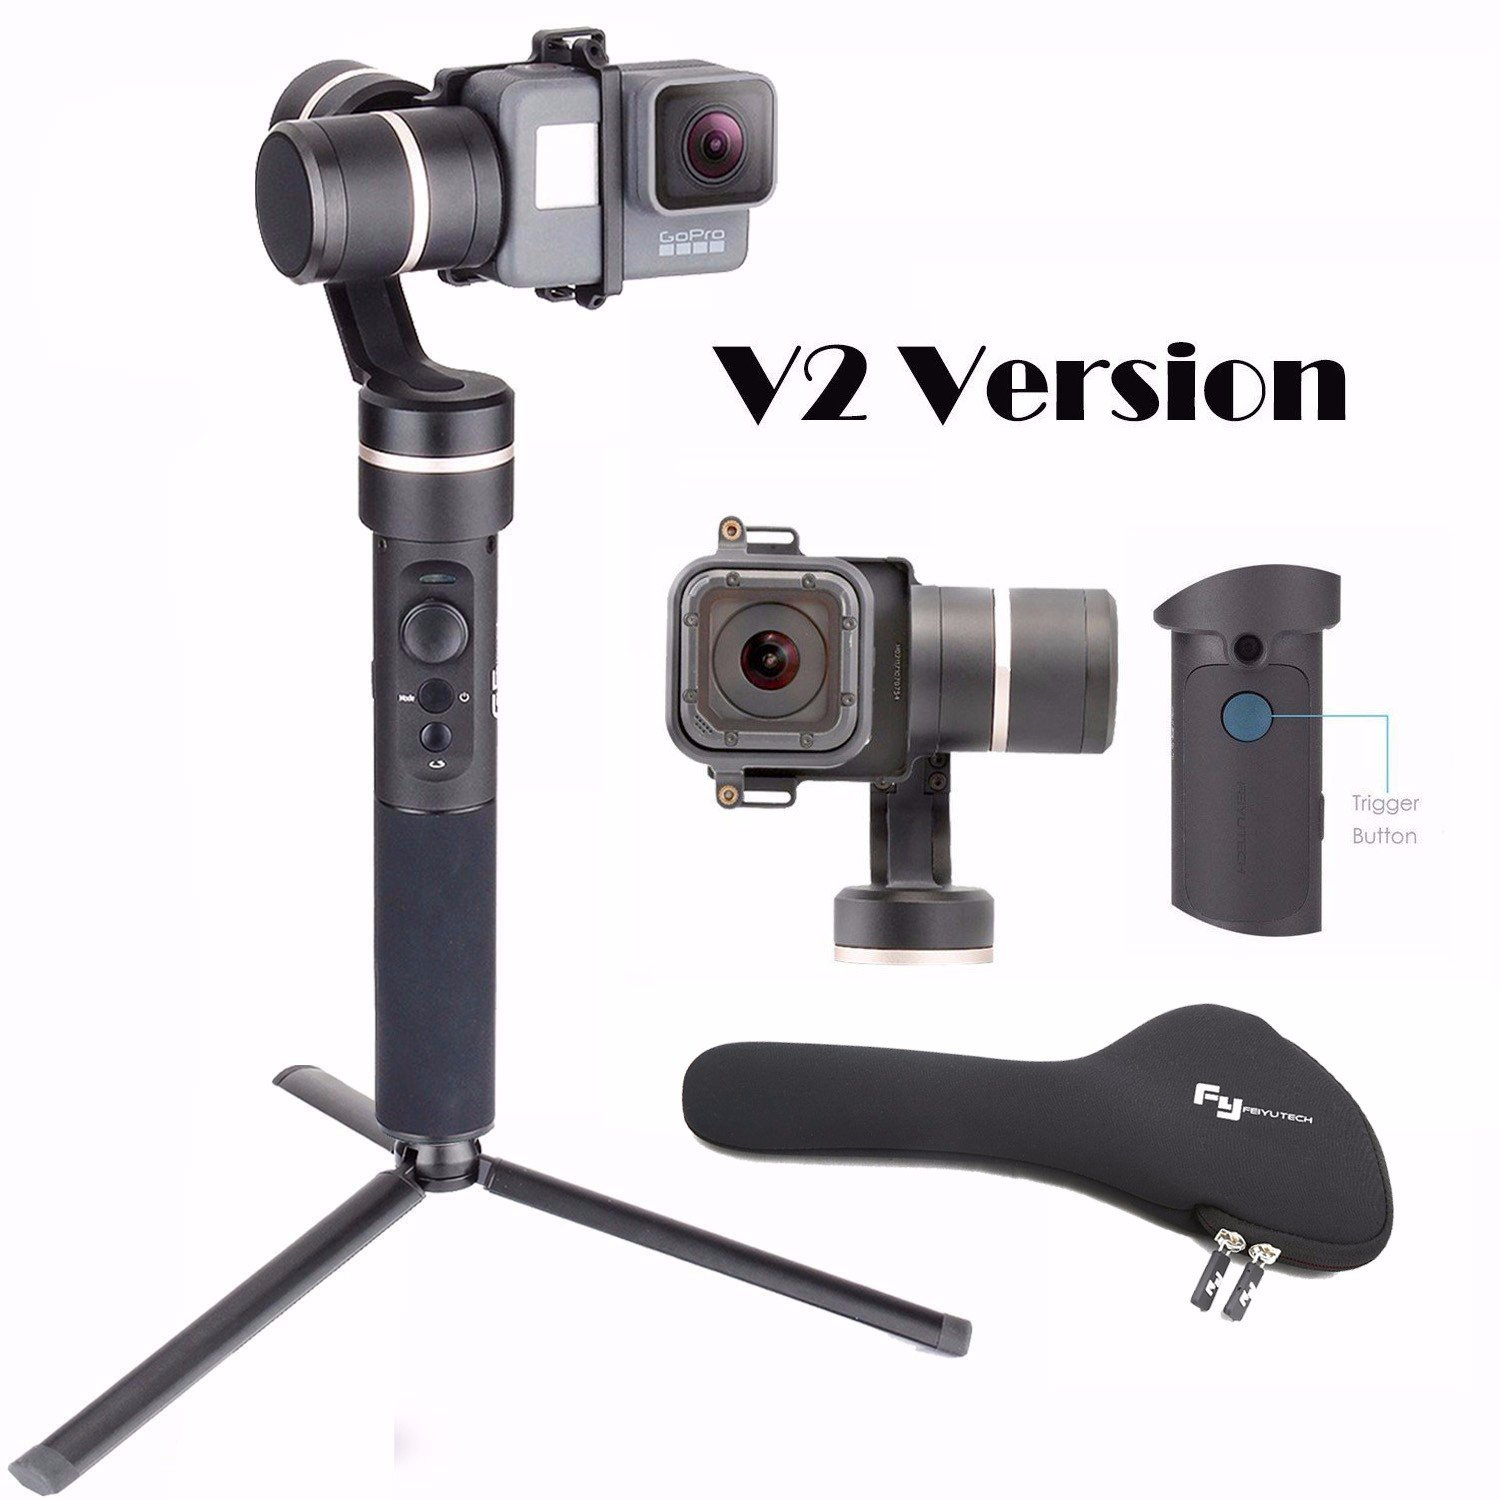 Feiyu FeiyuTech G5 V2 Updated 3 Axis Splash Proof Handheld Gimbal